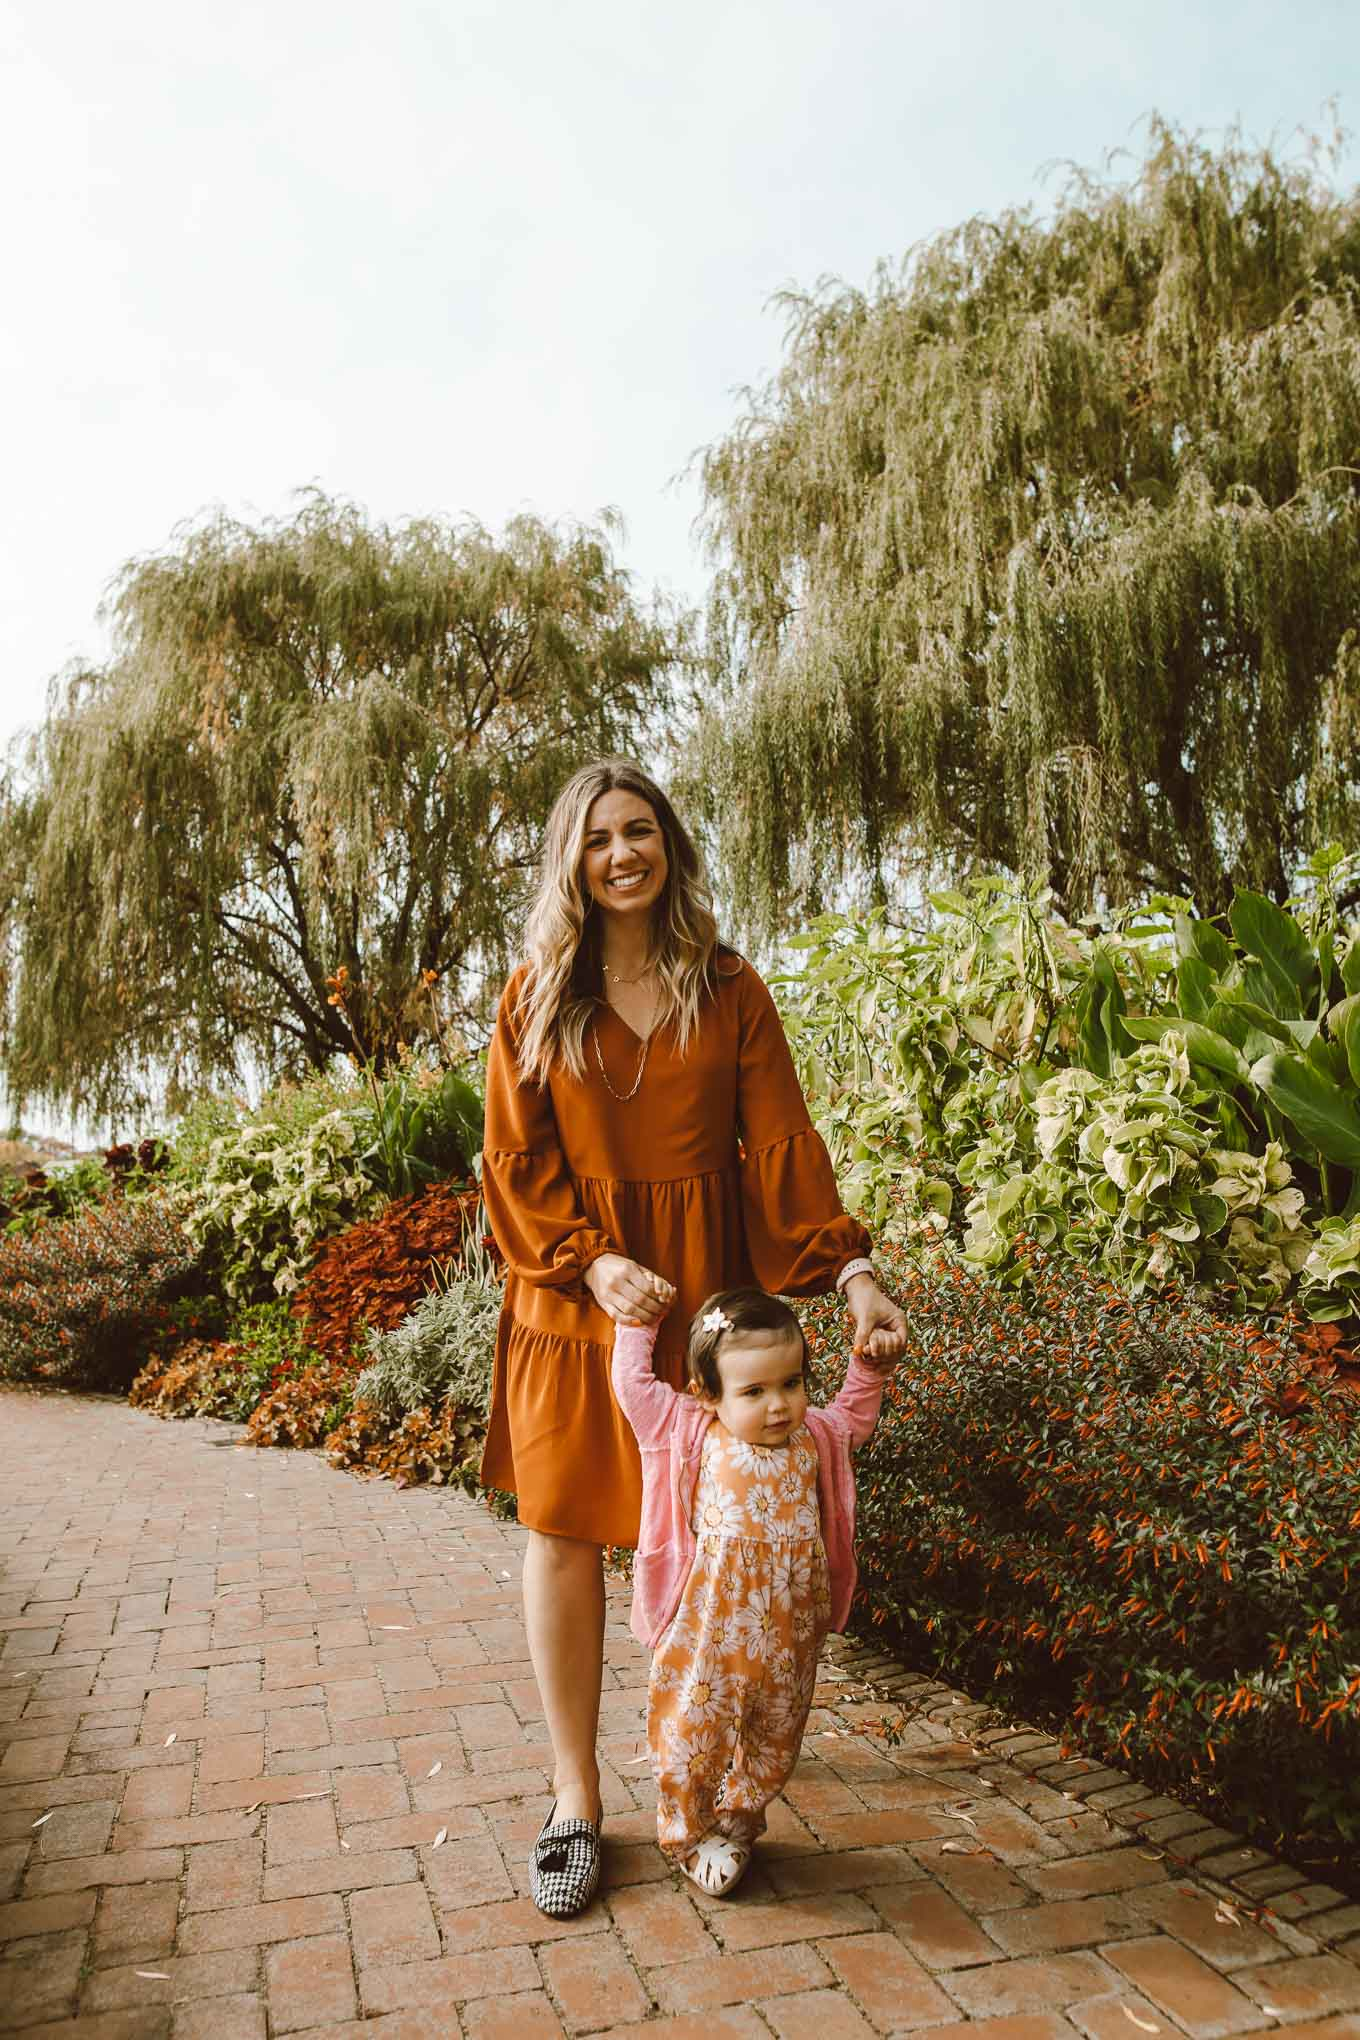 Botanic Garden by popular Chicago fashion blog, Glass of Glam: image of a woman walking through the Chicago Botanic Garden with her daughter and wearing a Amazon Amoretu Women Summer Tunic Dress V Neck Casual Loose Flowy Swing Shift Dresses, Kendra Scott Davis Vintage Gold Multi Strand Necklace In Golden Obsidian and Pat Pat Baby Girl Sunflowers Print Jumpsuits.